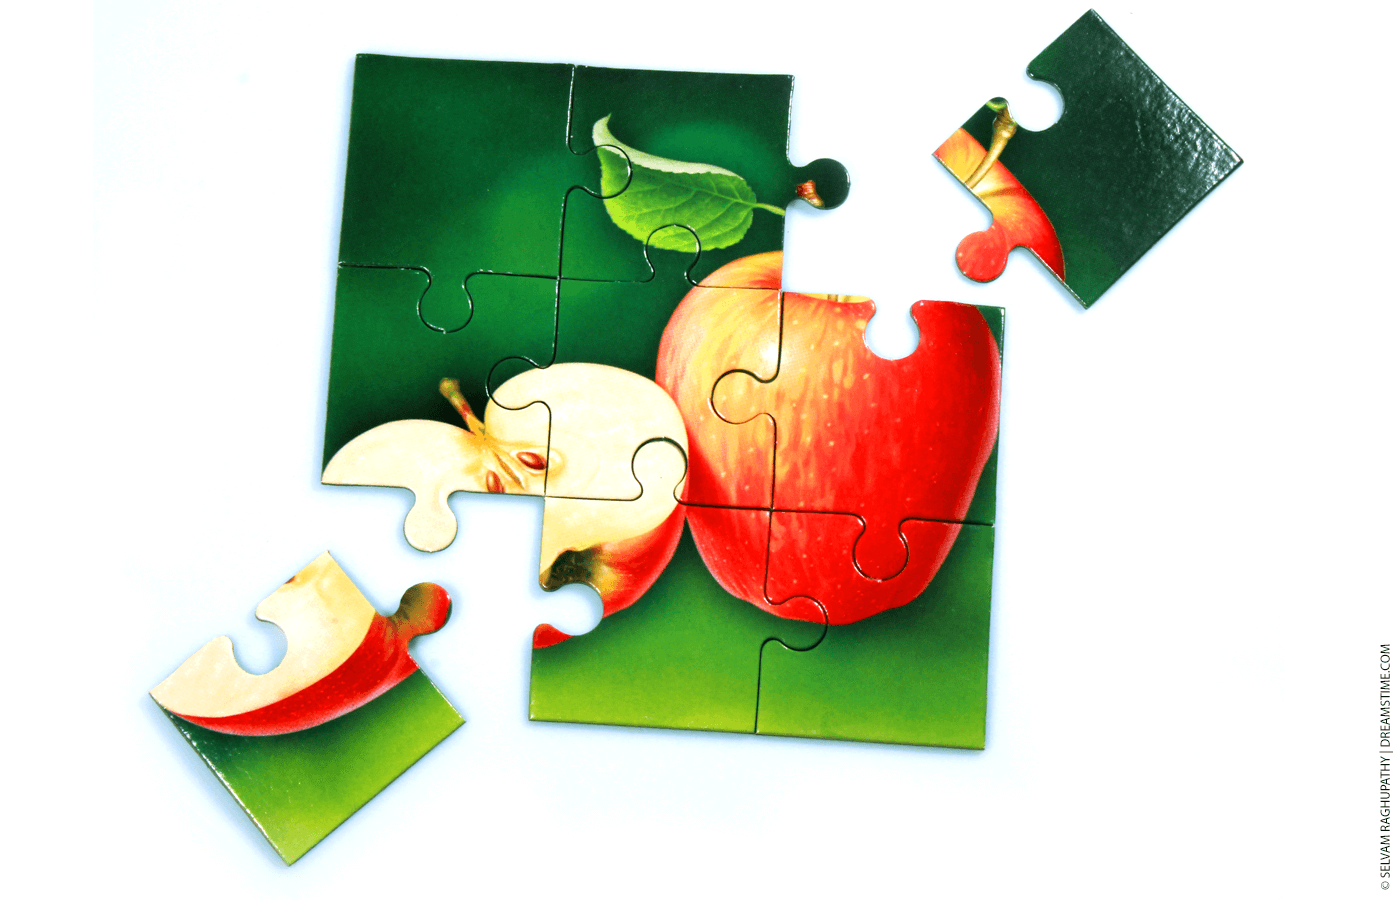 A puzzle with two pieces breaking away